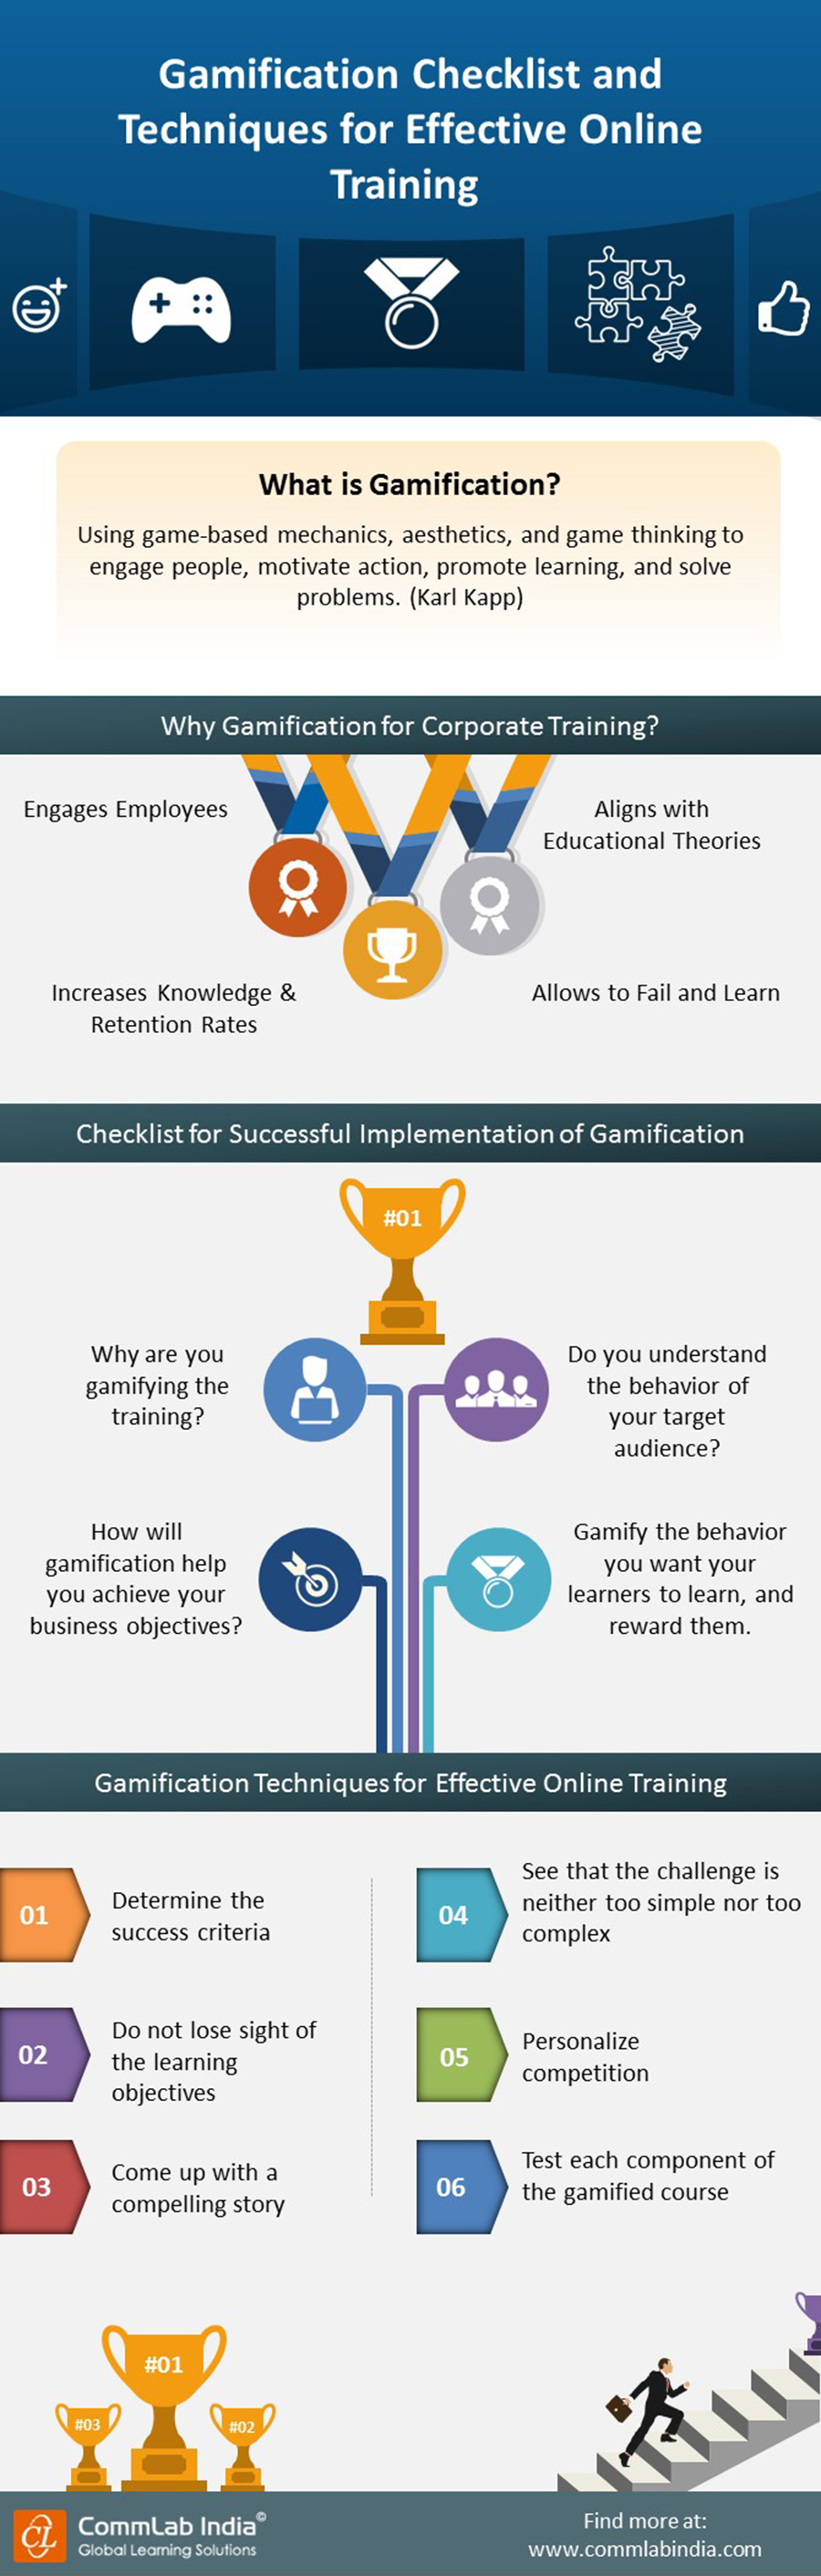 Gamification Checklist and Techniques for Effective Online Training [Infographic]